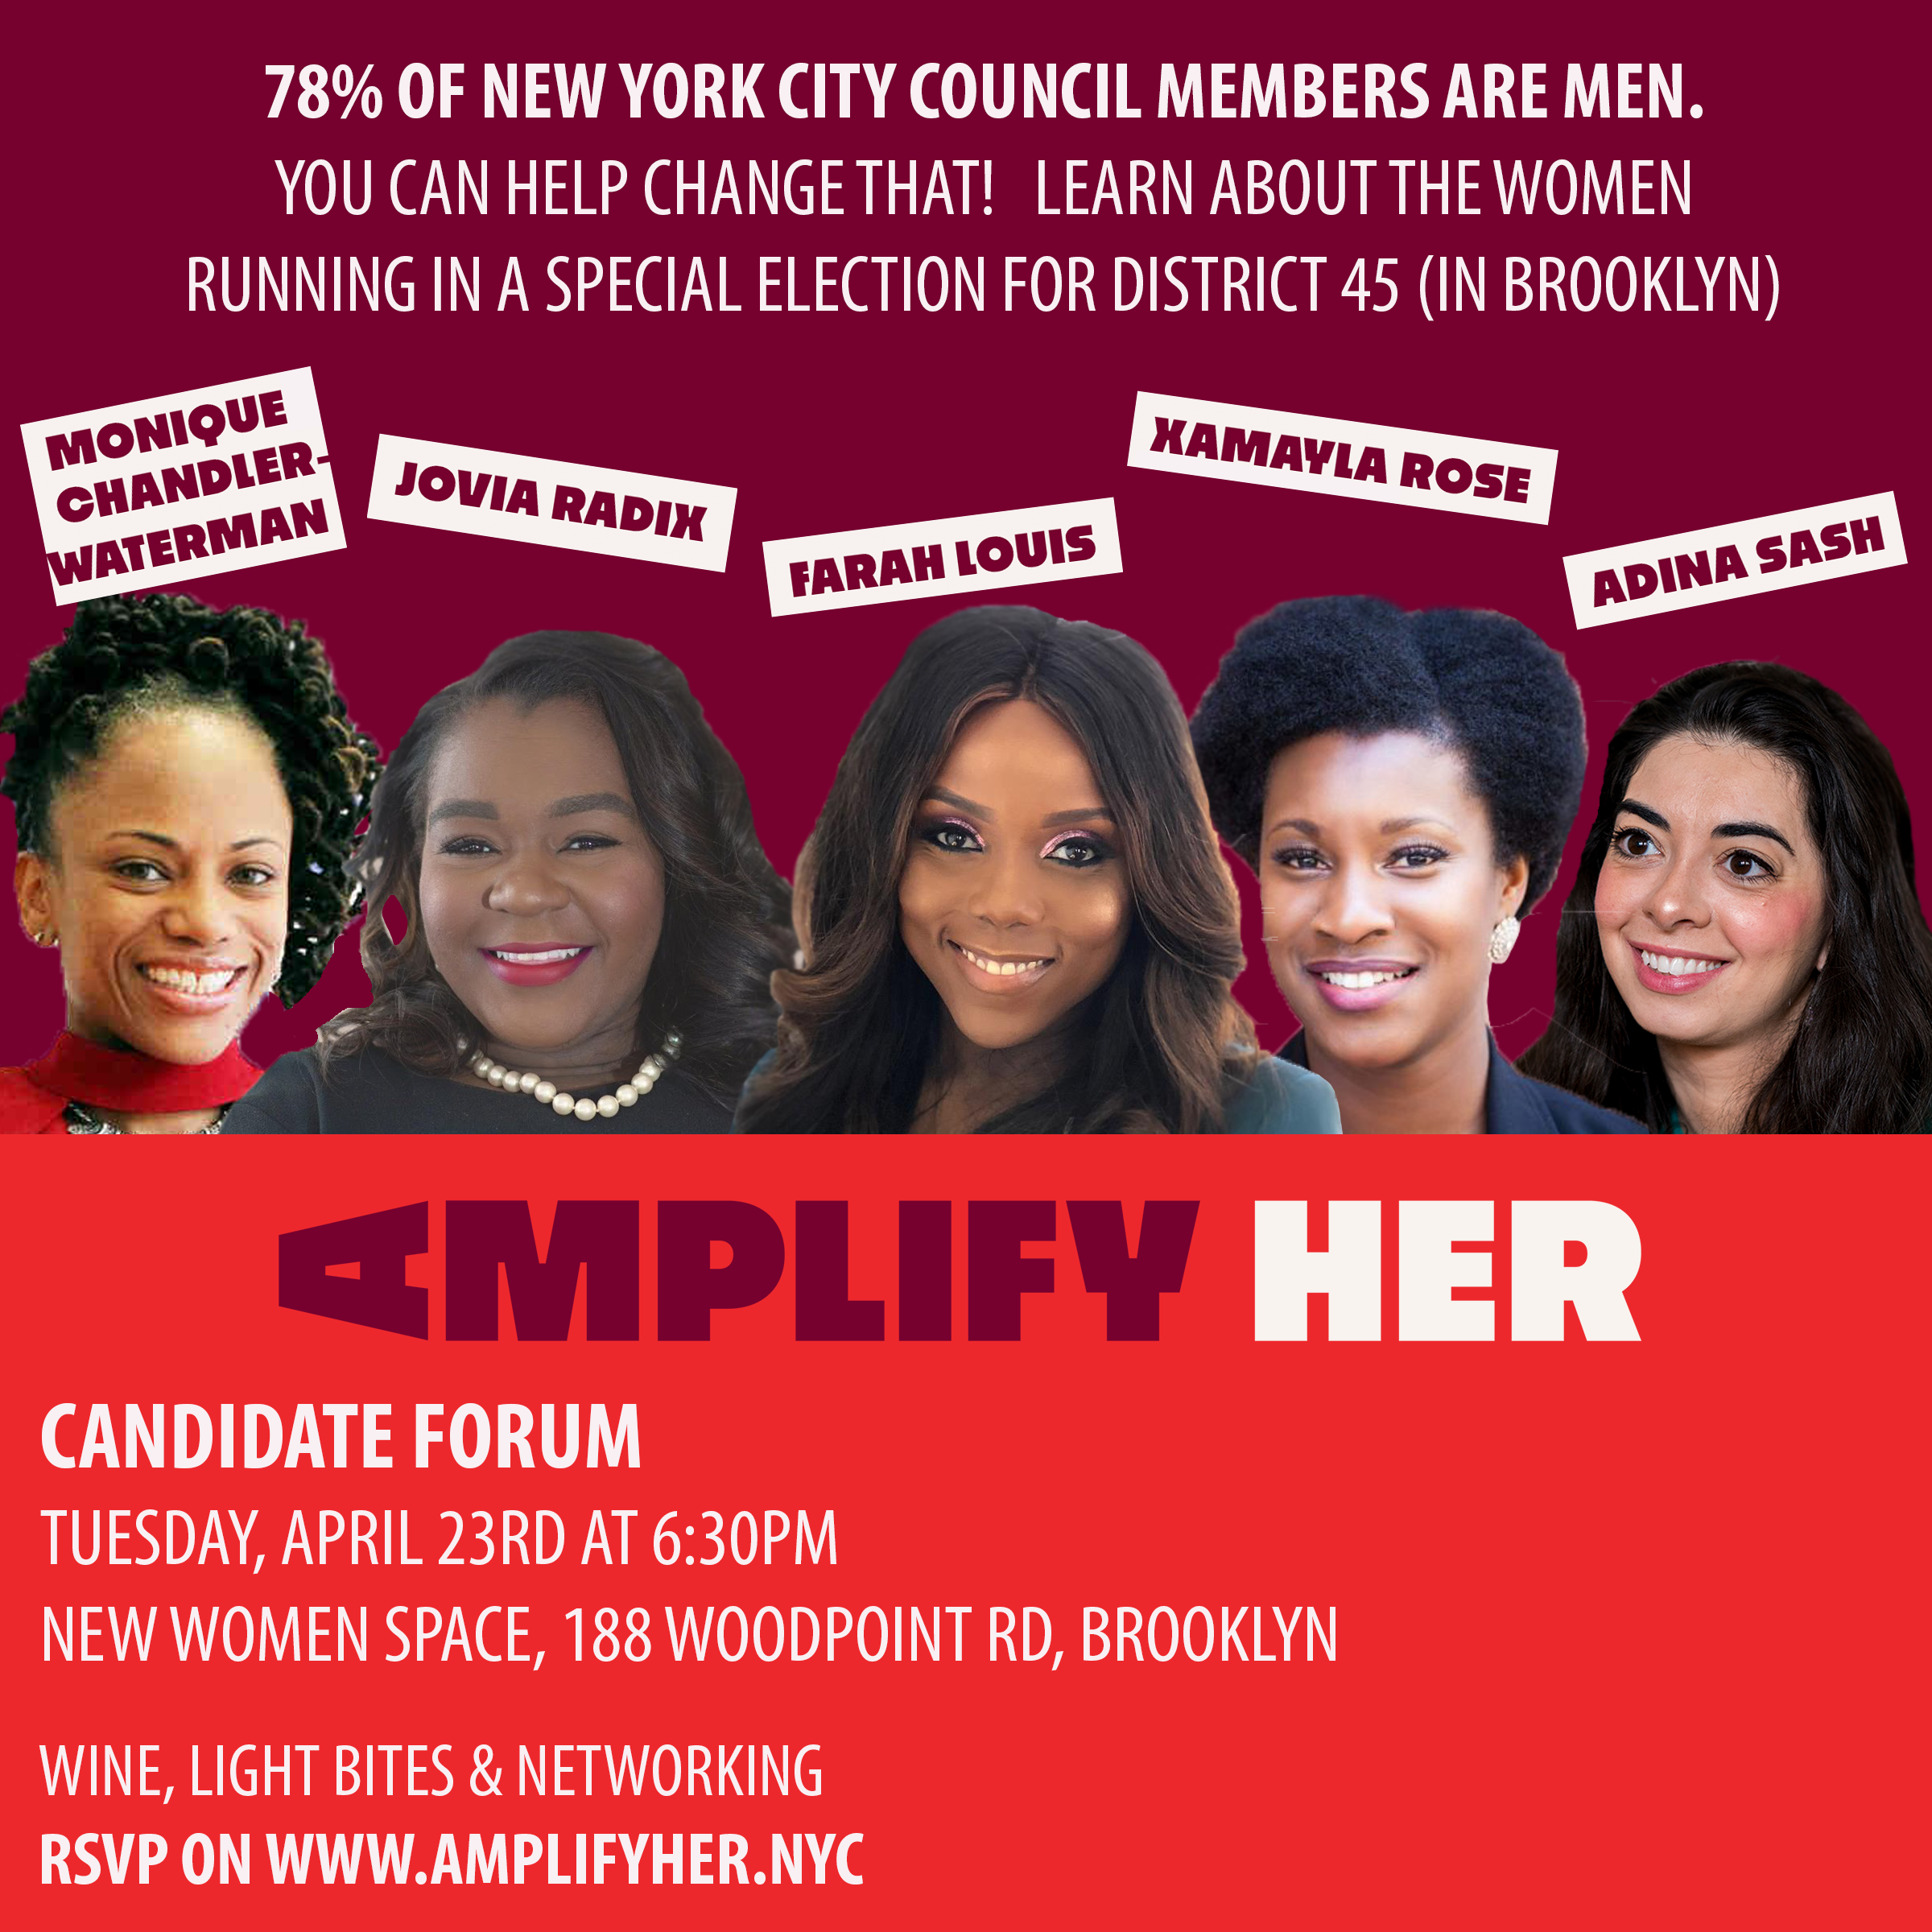 AMPLIFY HER CITY COUNCIL FORUM 4/23/19 (BROOKLYN)